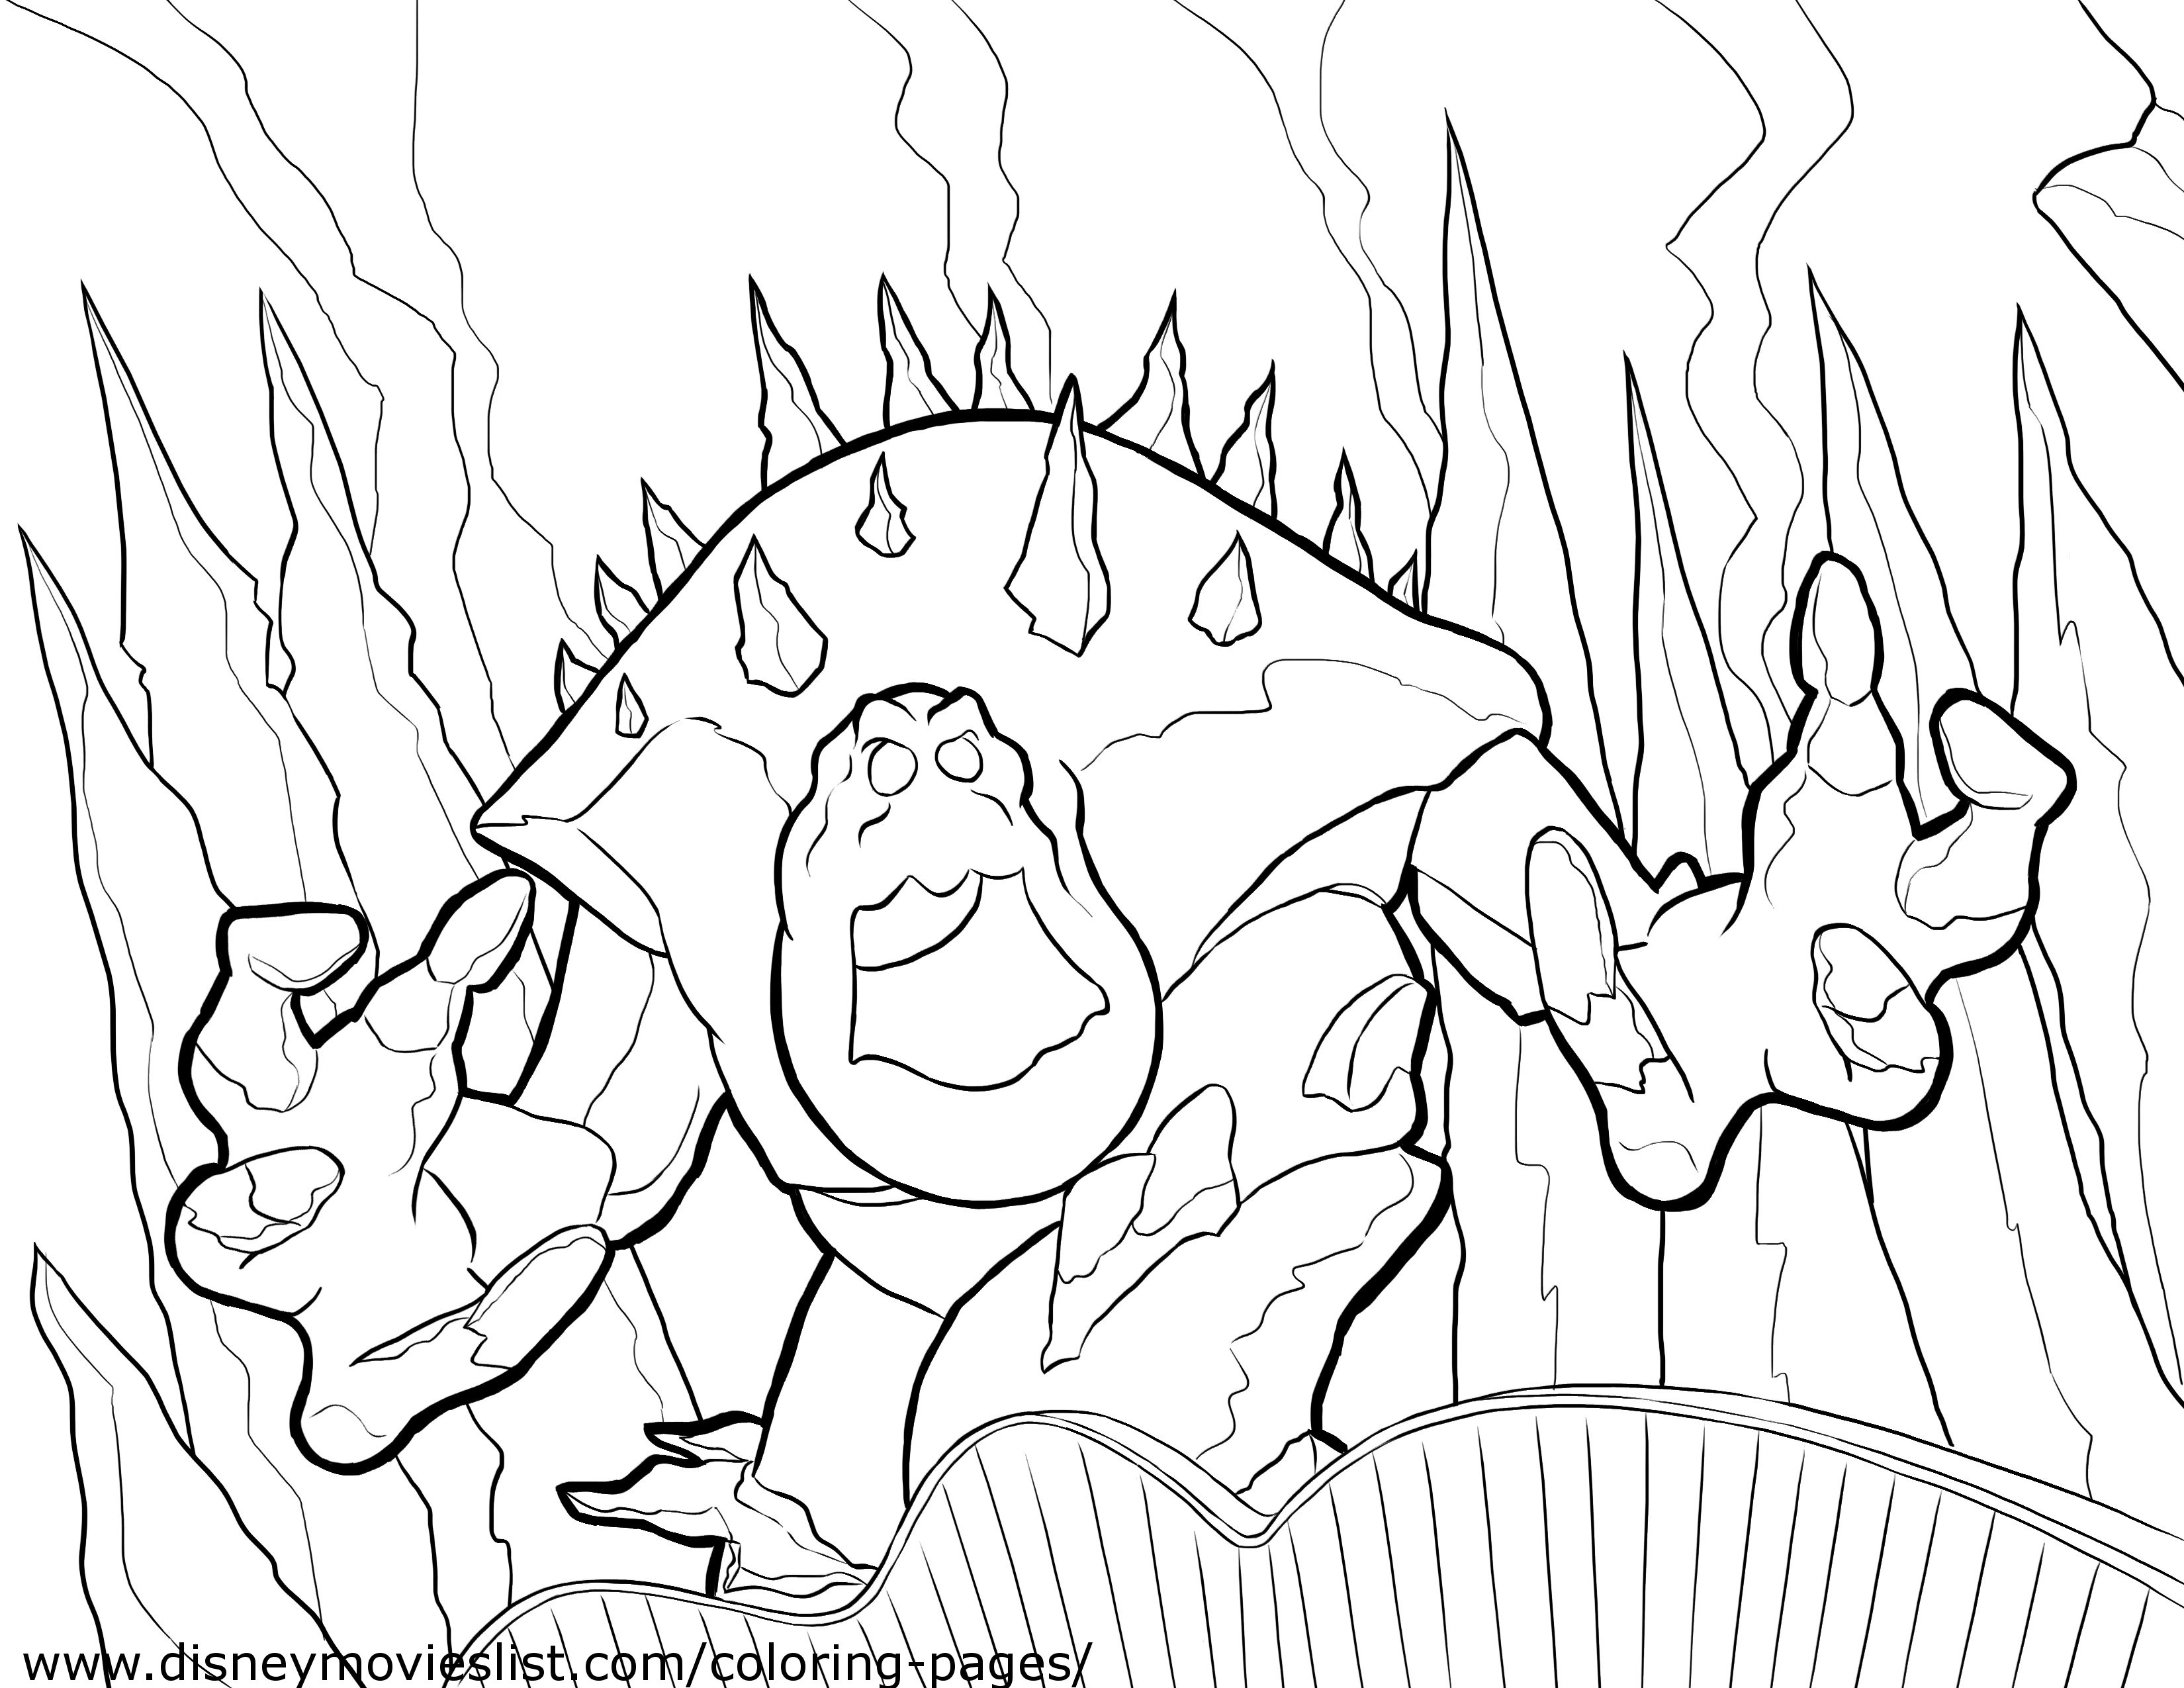 FROZEN Marshmallow Coloring Page - Lovebugs and Postcards